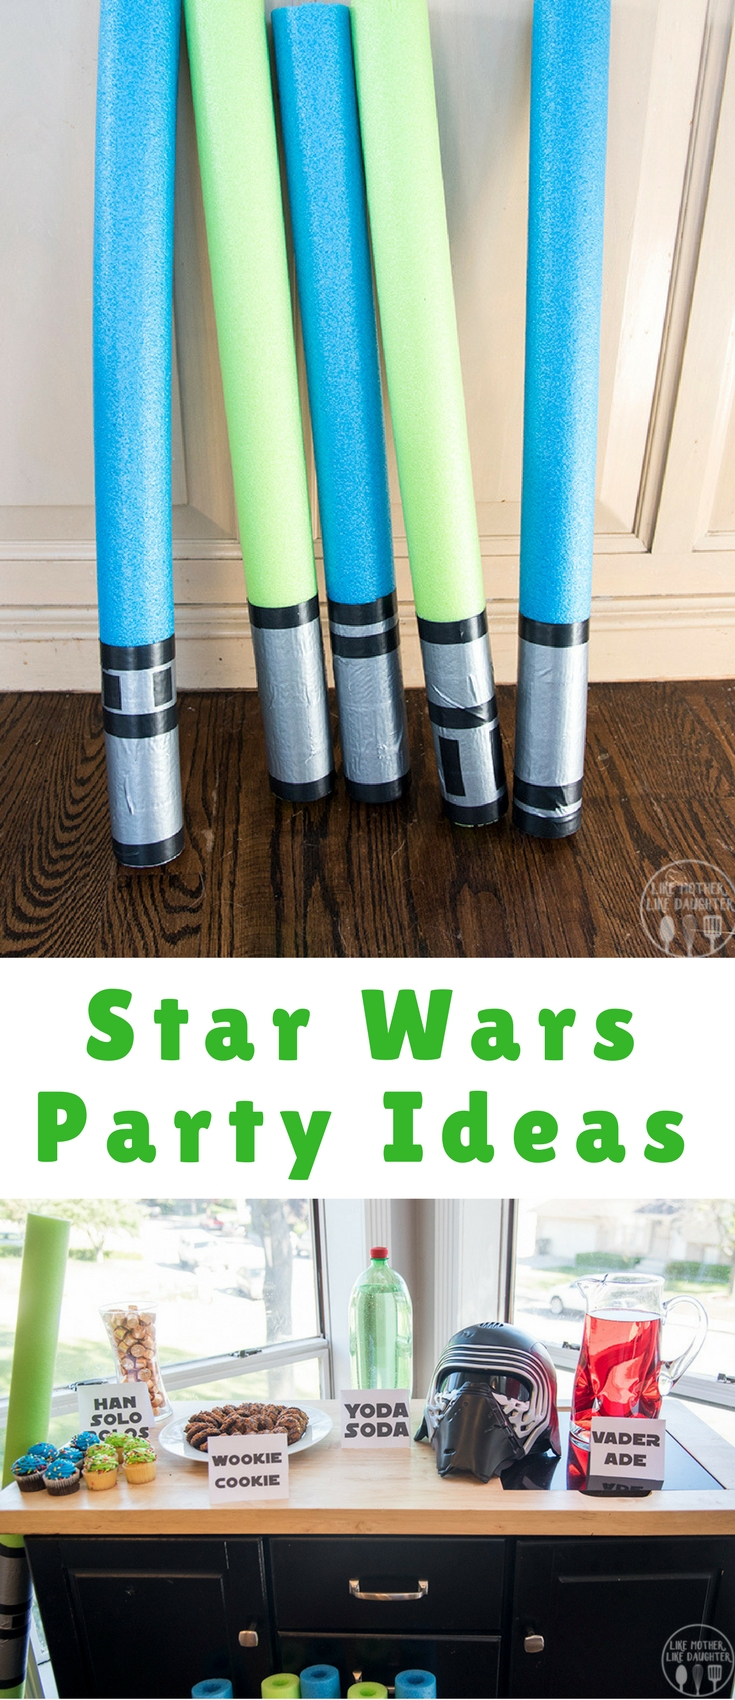 These fun Star Wars party ideas are perfect for someone who loves Star Wars, from fun treat ideas, to homemade light sabers, and more!